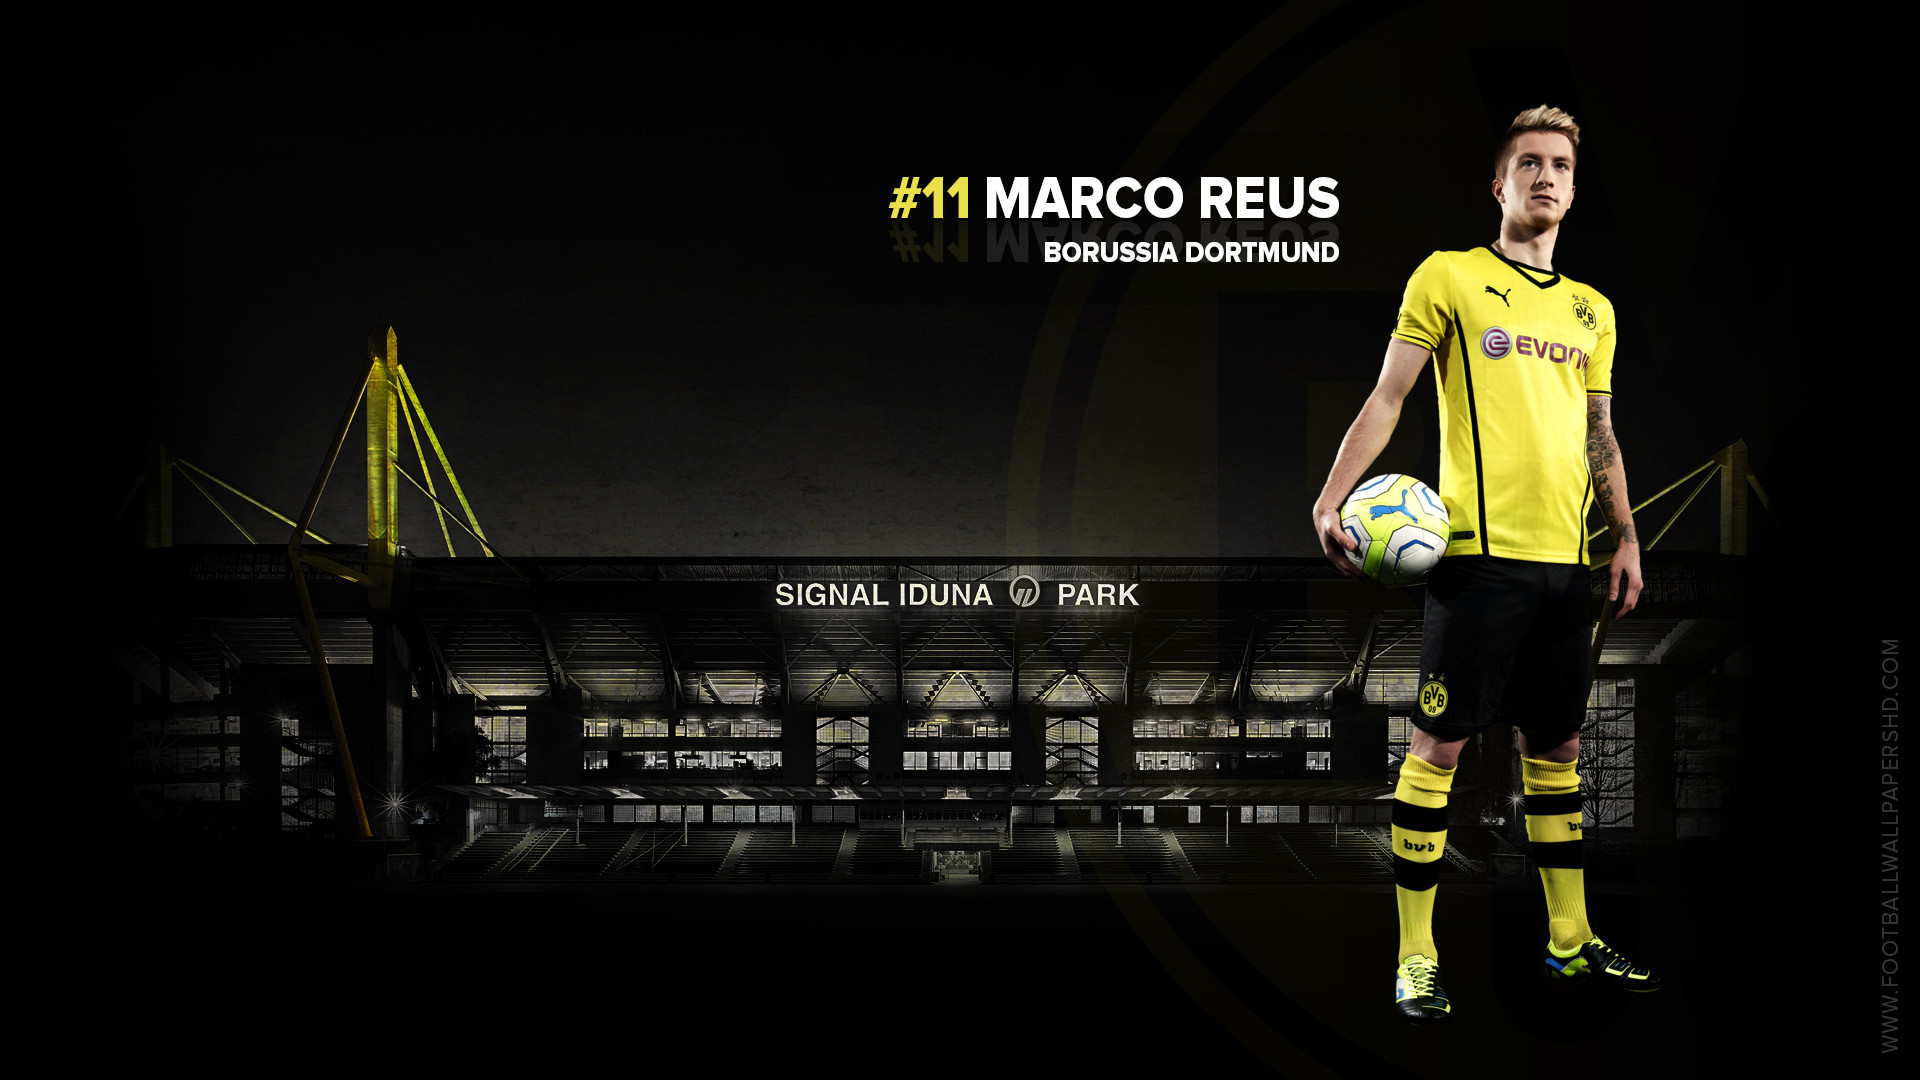 Marco reus wallpapers 75 images wallpaper marco reus hd by pieroh11 by pieroh19 voltagebd Images